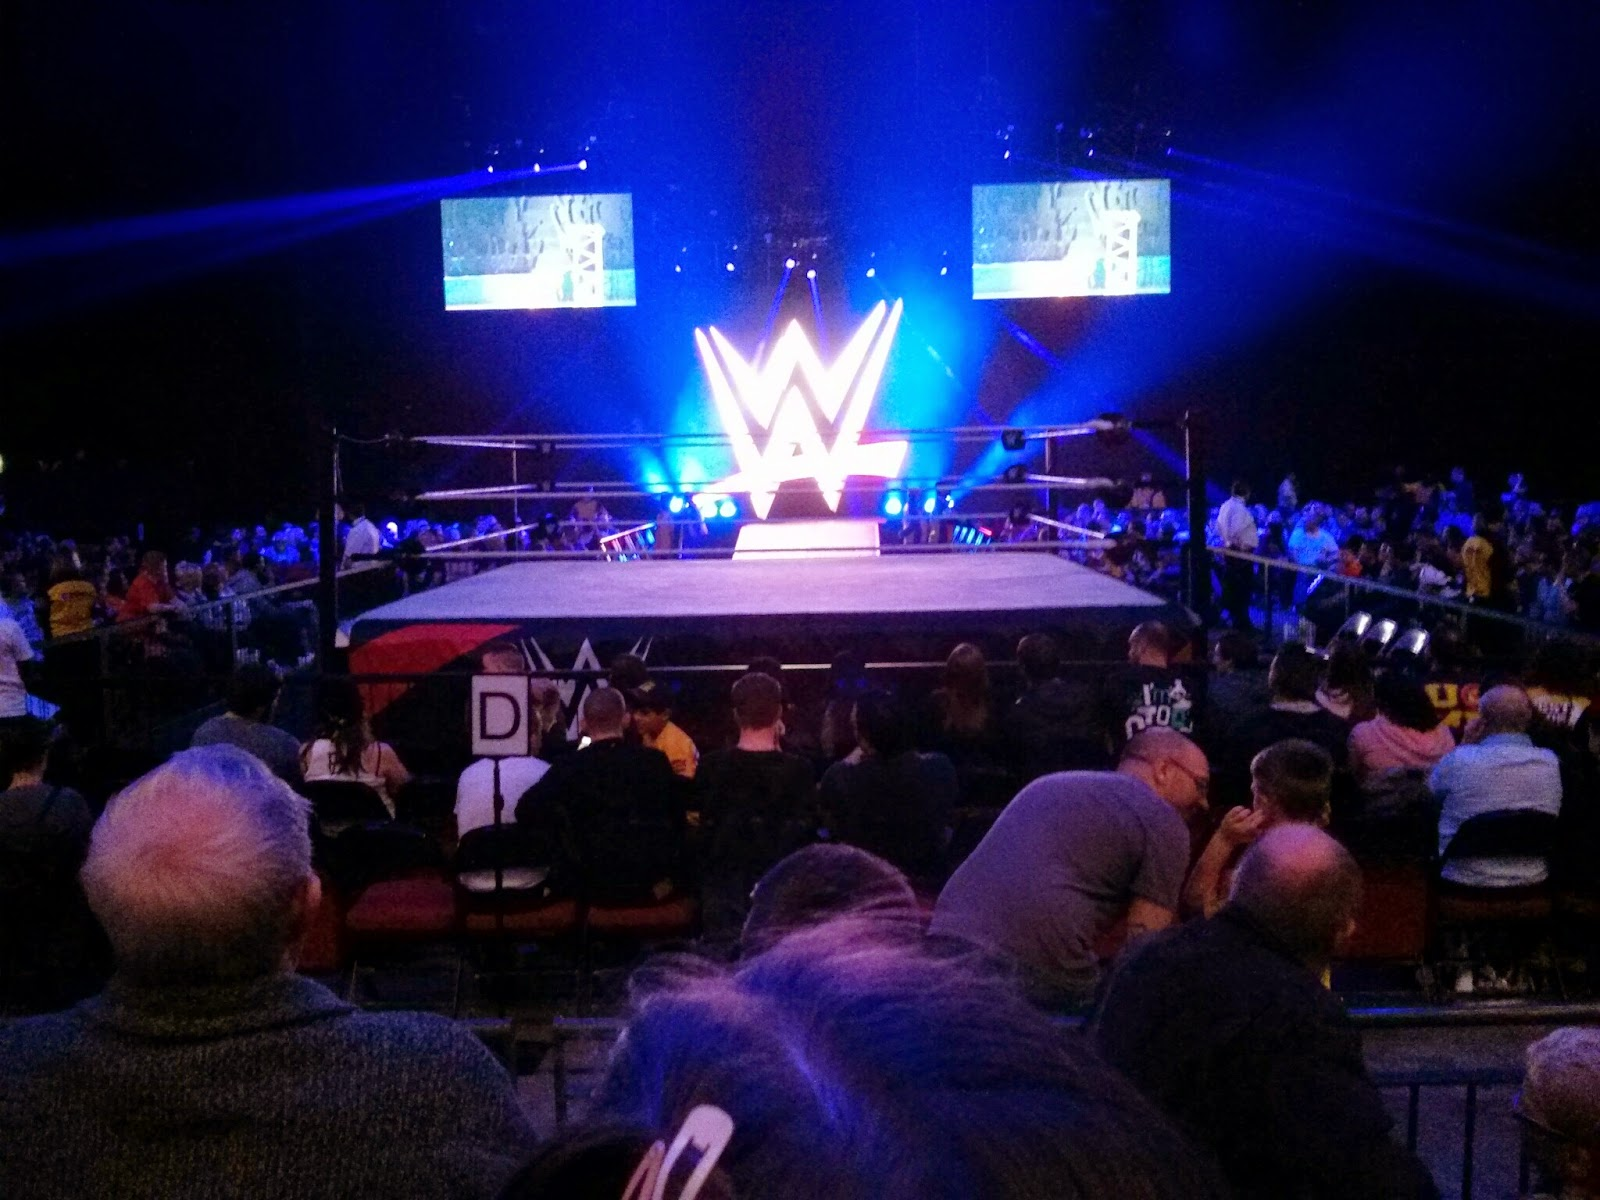 Our view at WWE